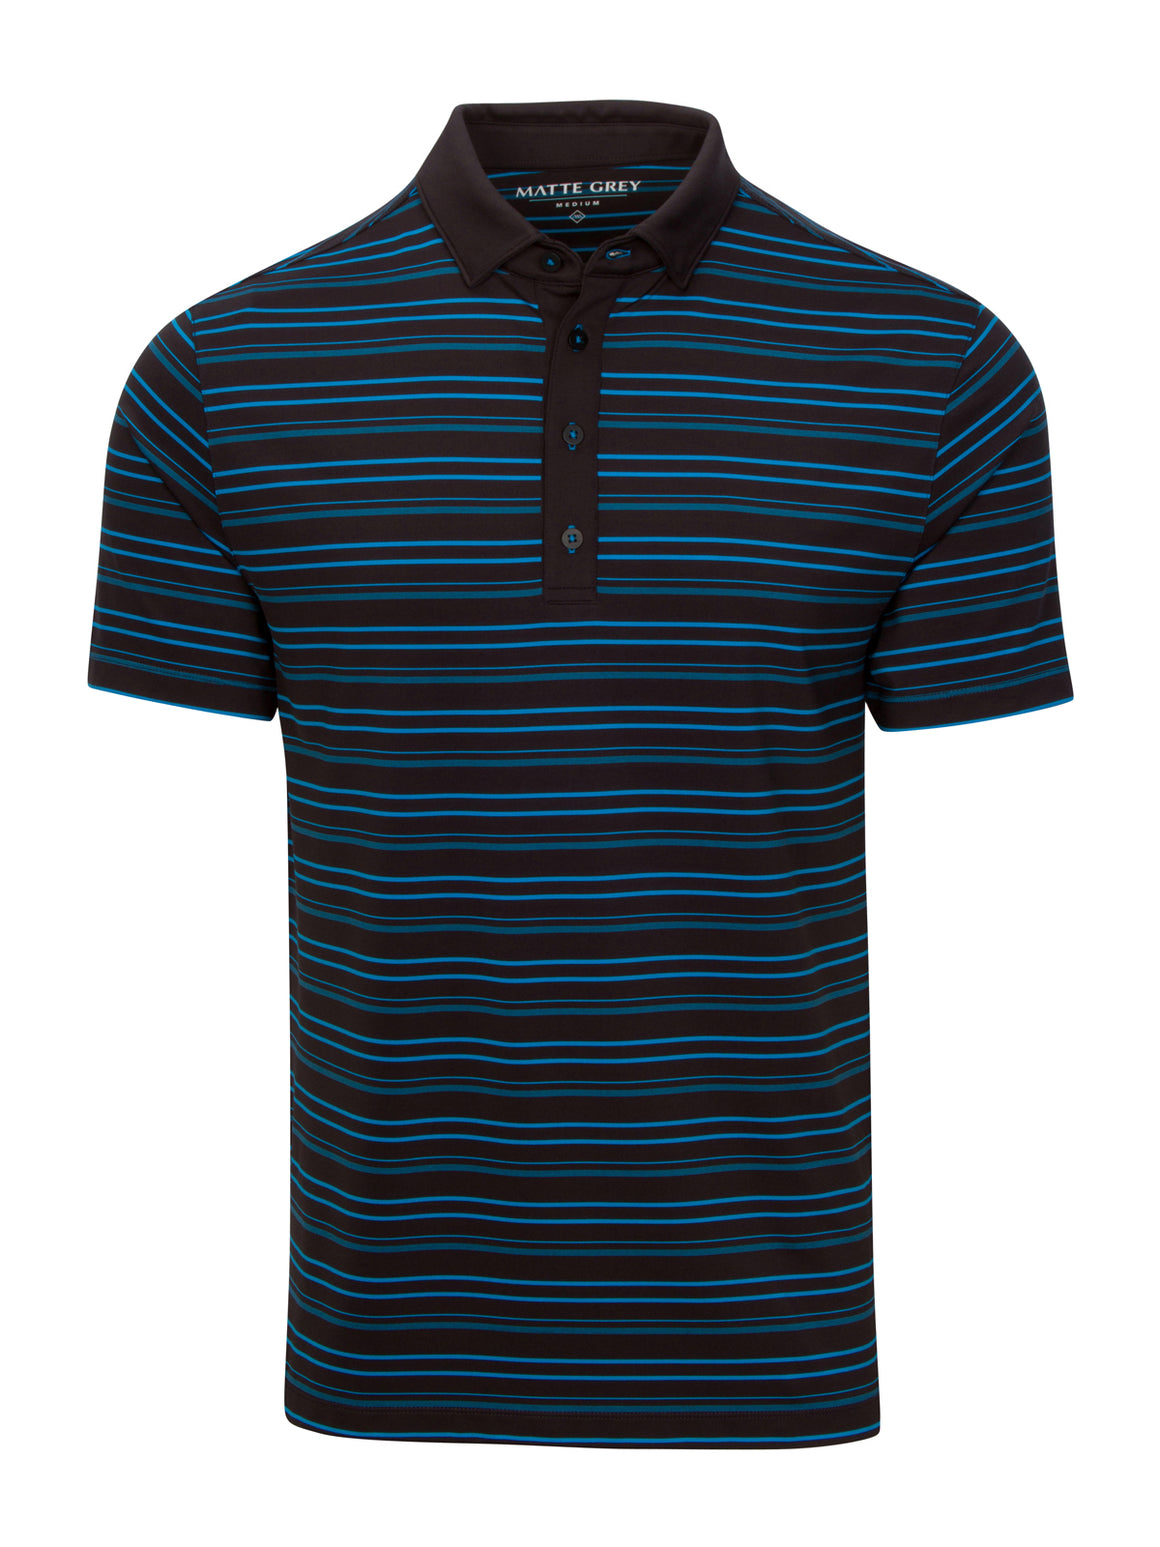 Coop - Black (Coastal Blue)